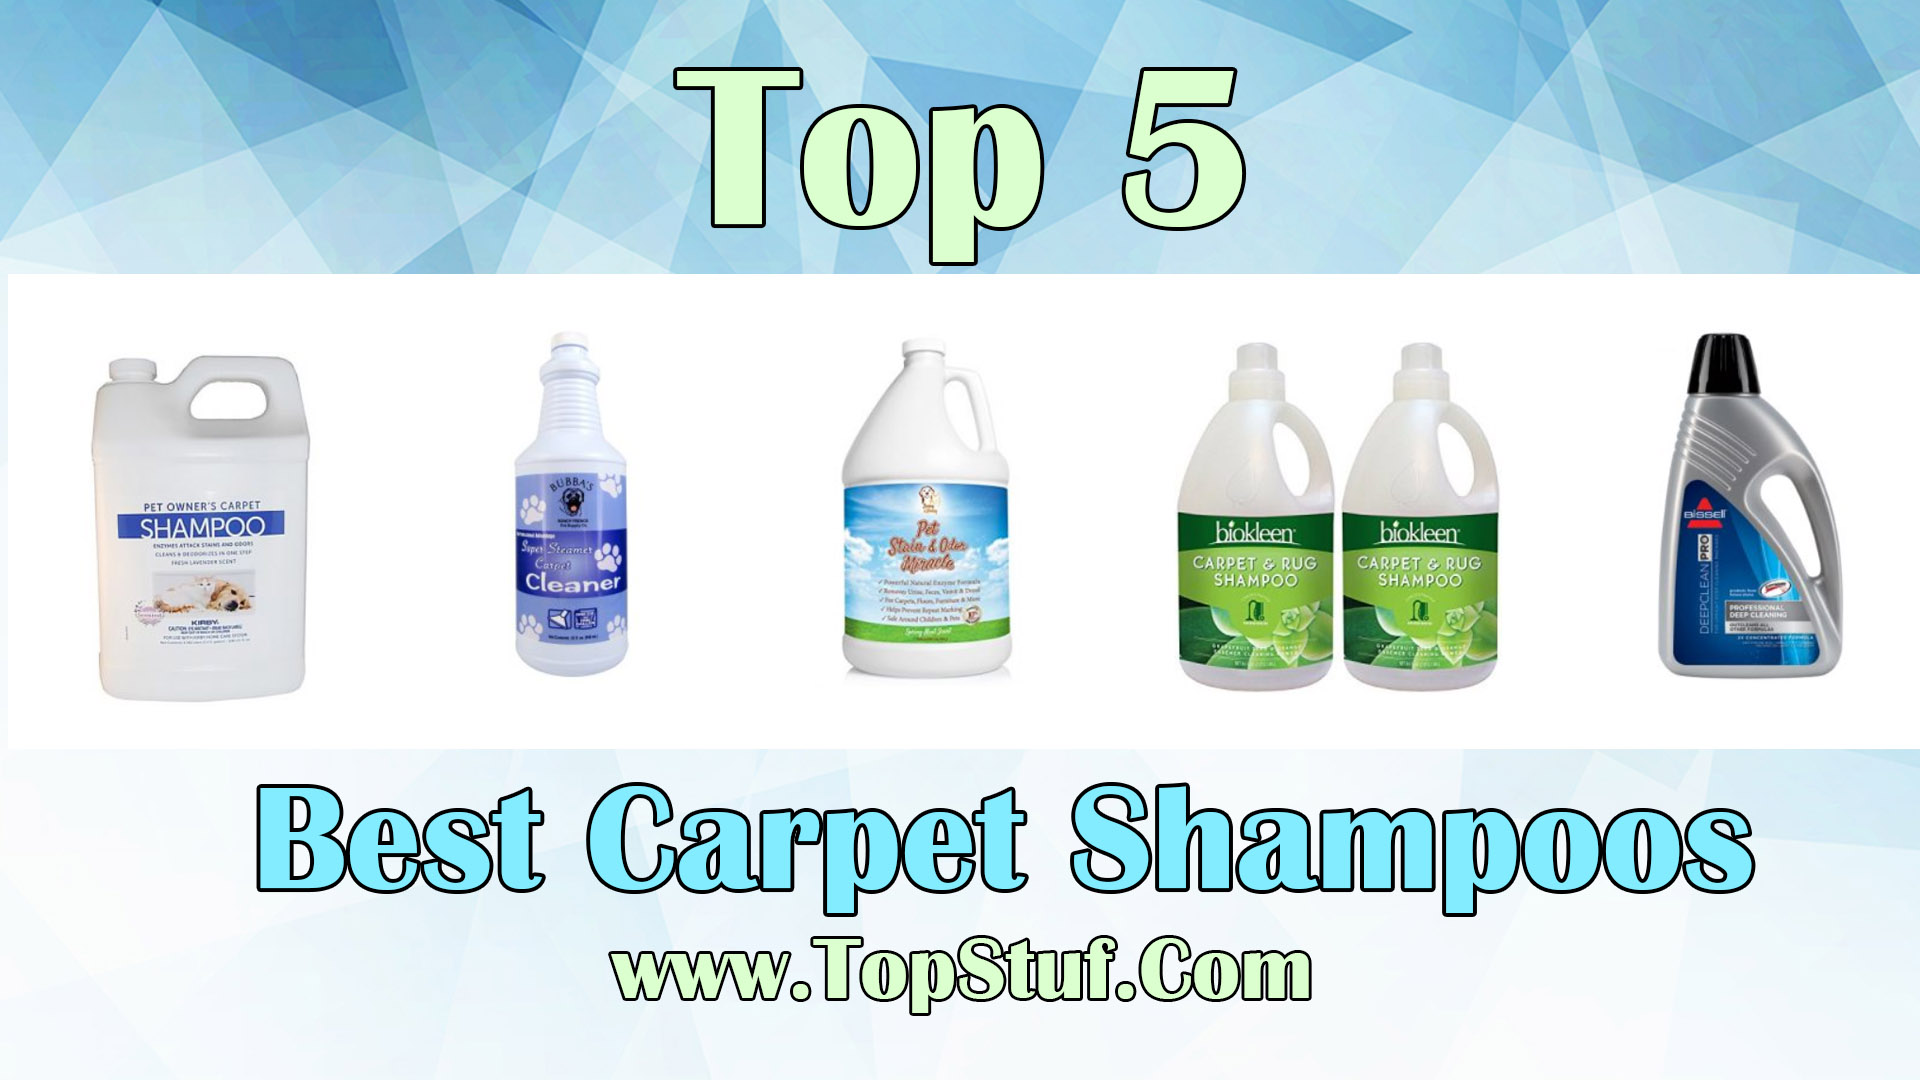 Best Carpet Shampoos